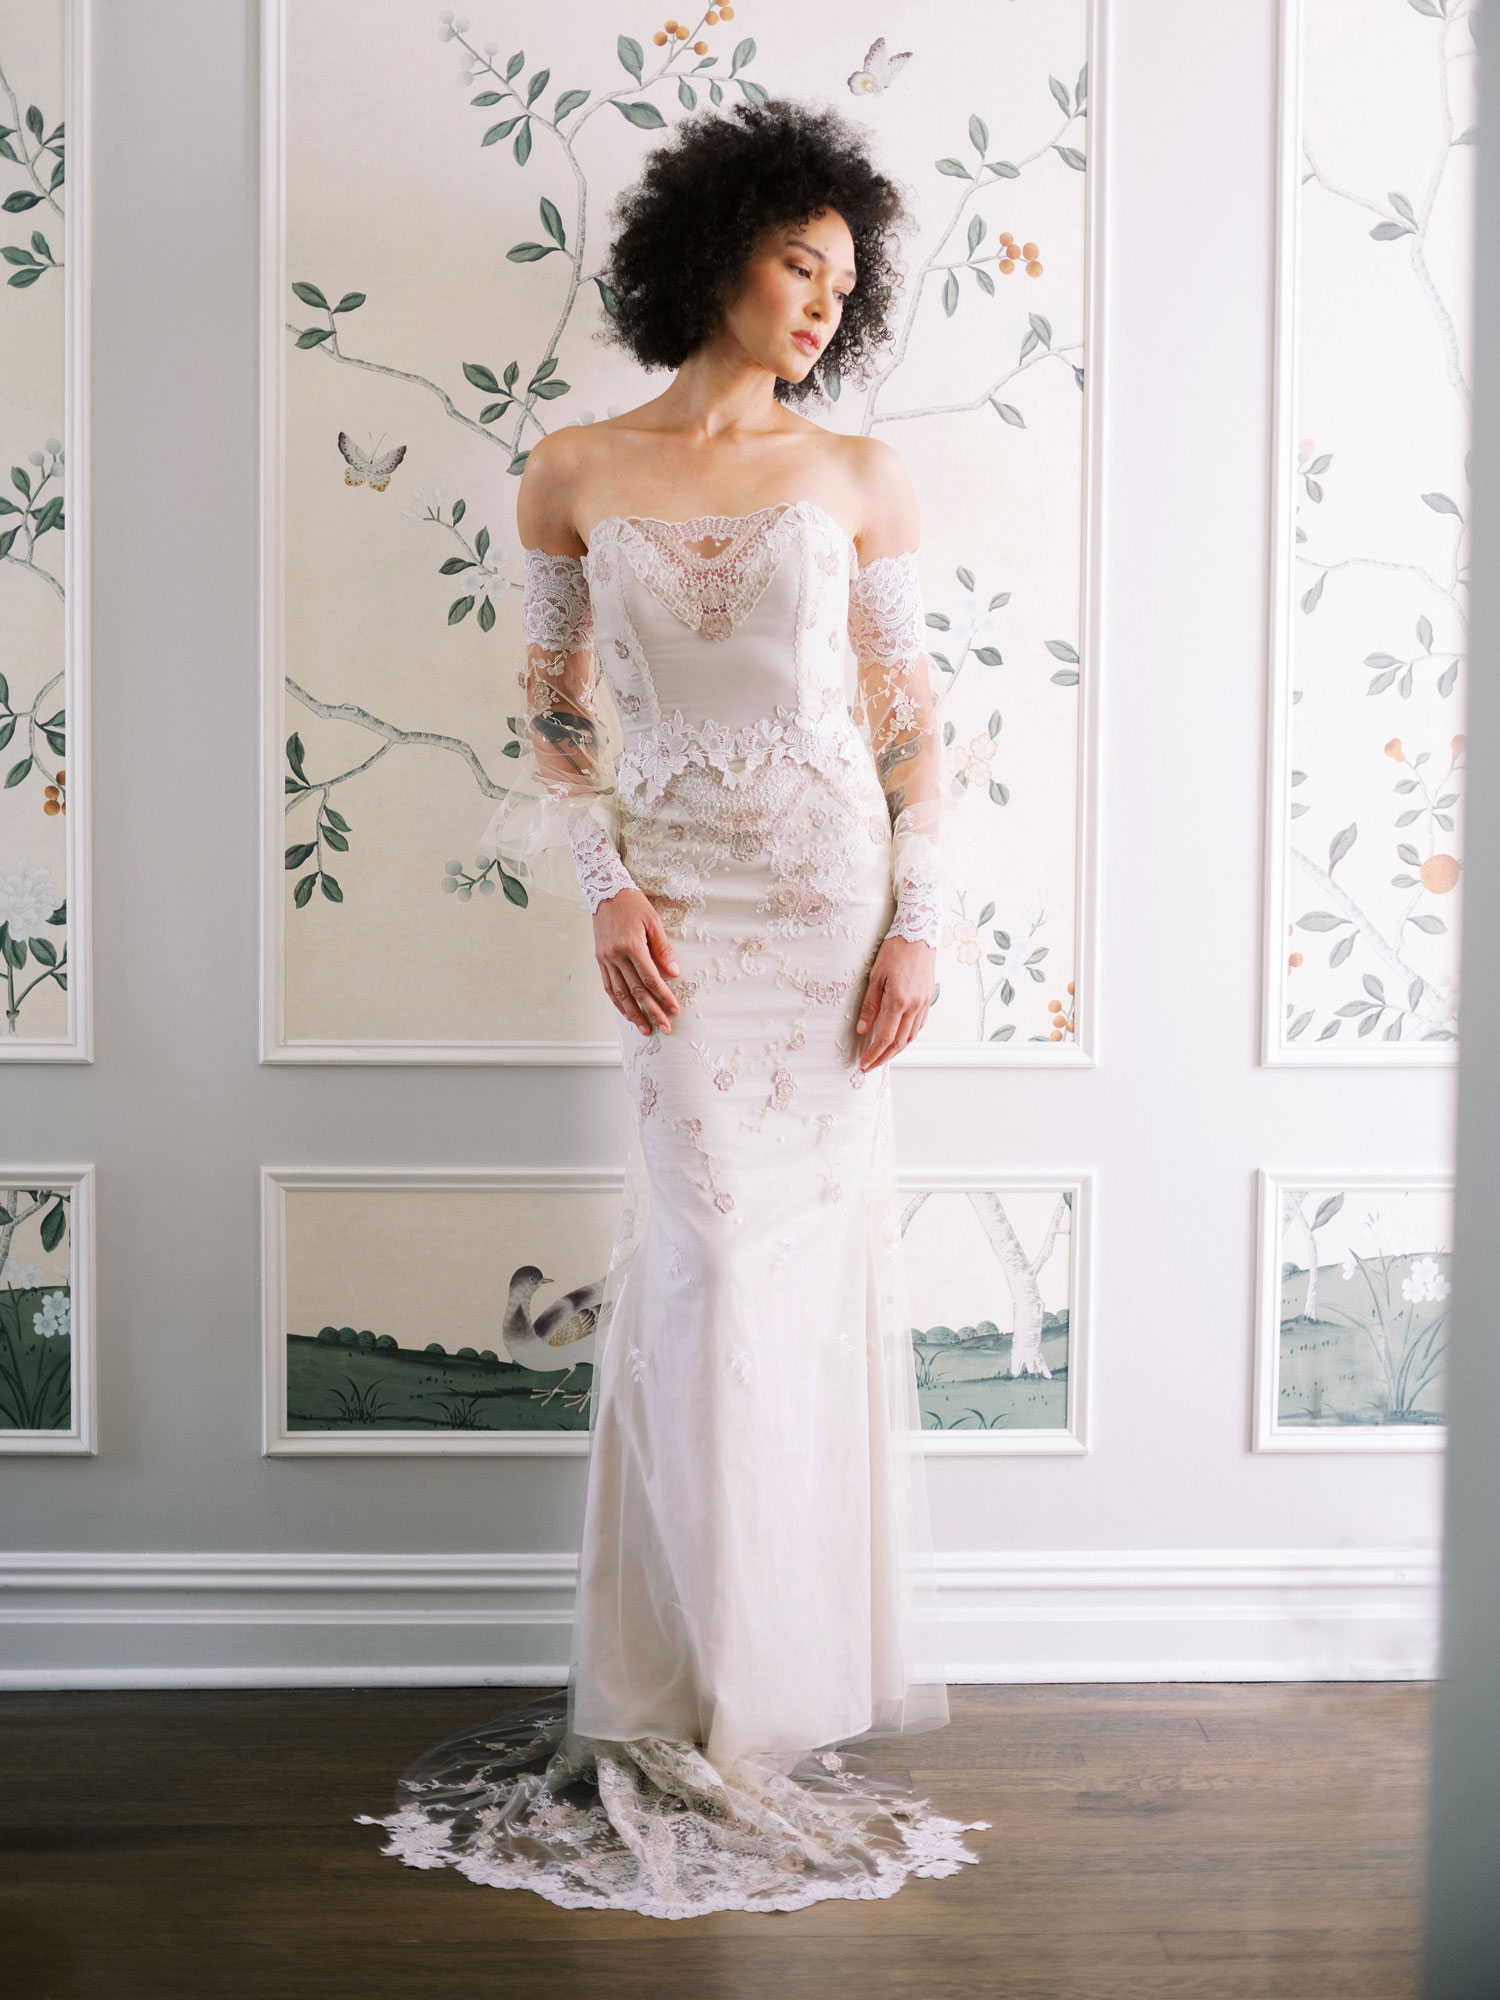 Claire Pettibone Evolution 2020 bridal collection Lyra off shoulder sheer long sleeve wedding dress